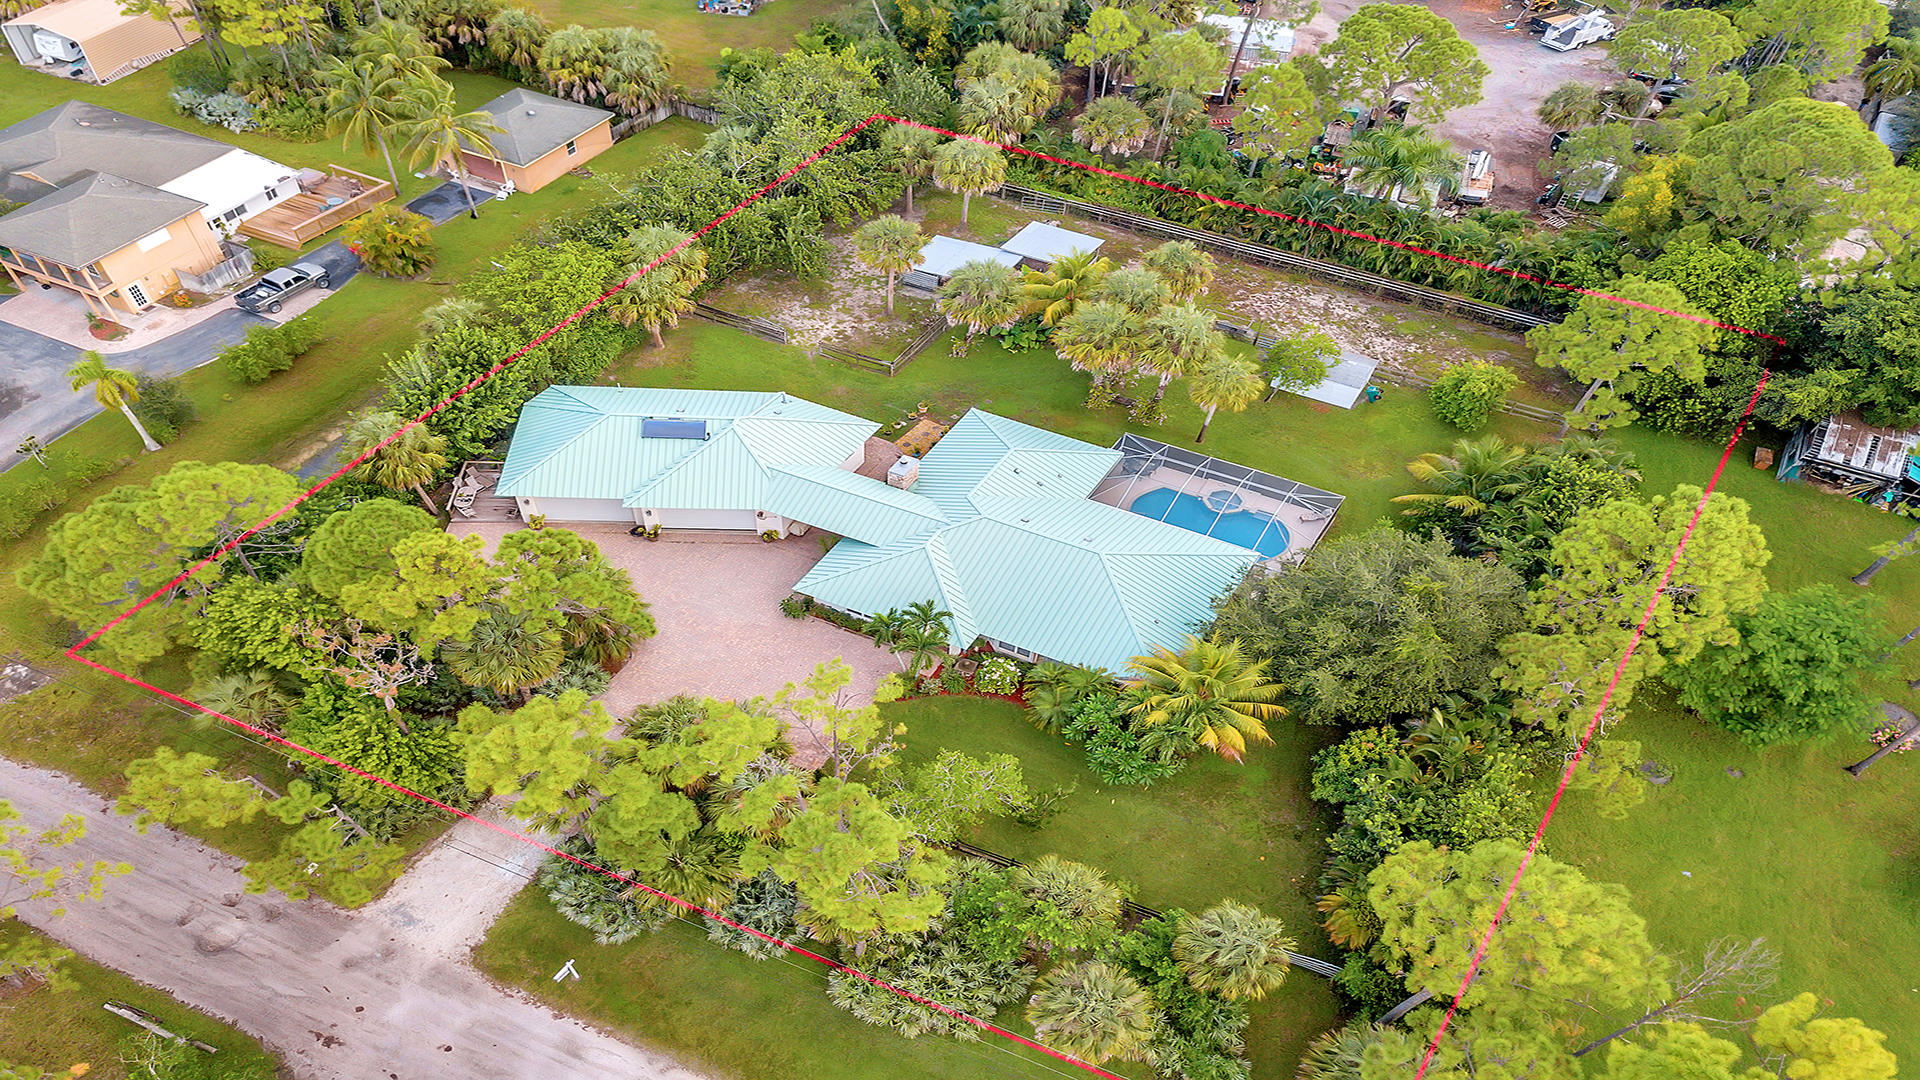 8363 Bowie Way, Lake Worth, Florida 33467, 3 Bedrooms Bedrooms, ,3 BathroomsBathrooms,Single Family,For Sale,PALM BEACH RANCHETTES,Bowie,1,RX-10469669